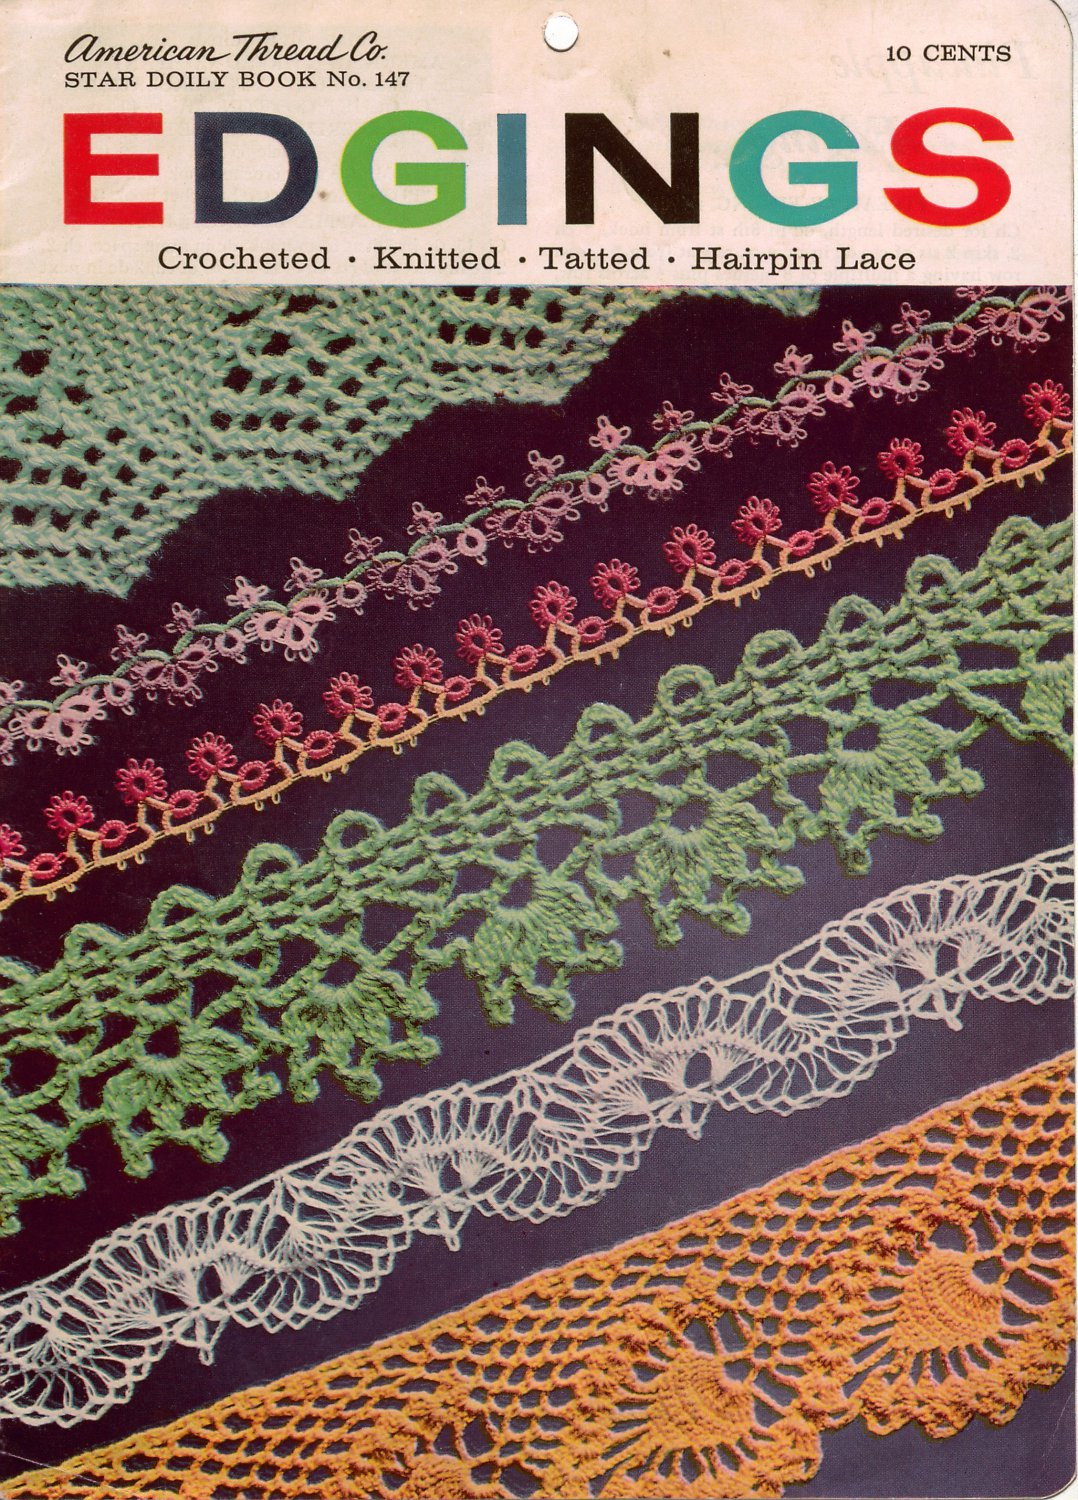 Crochet Lace Book Cover ~ Vintage crochet knitting tatting hairpin lace patterns